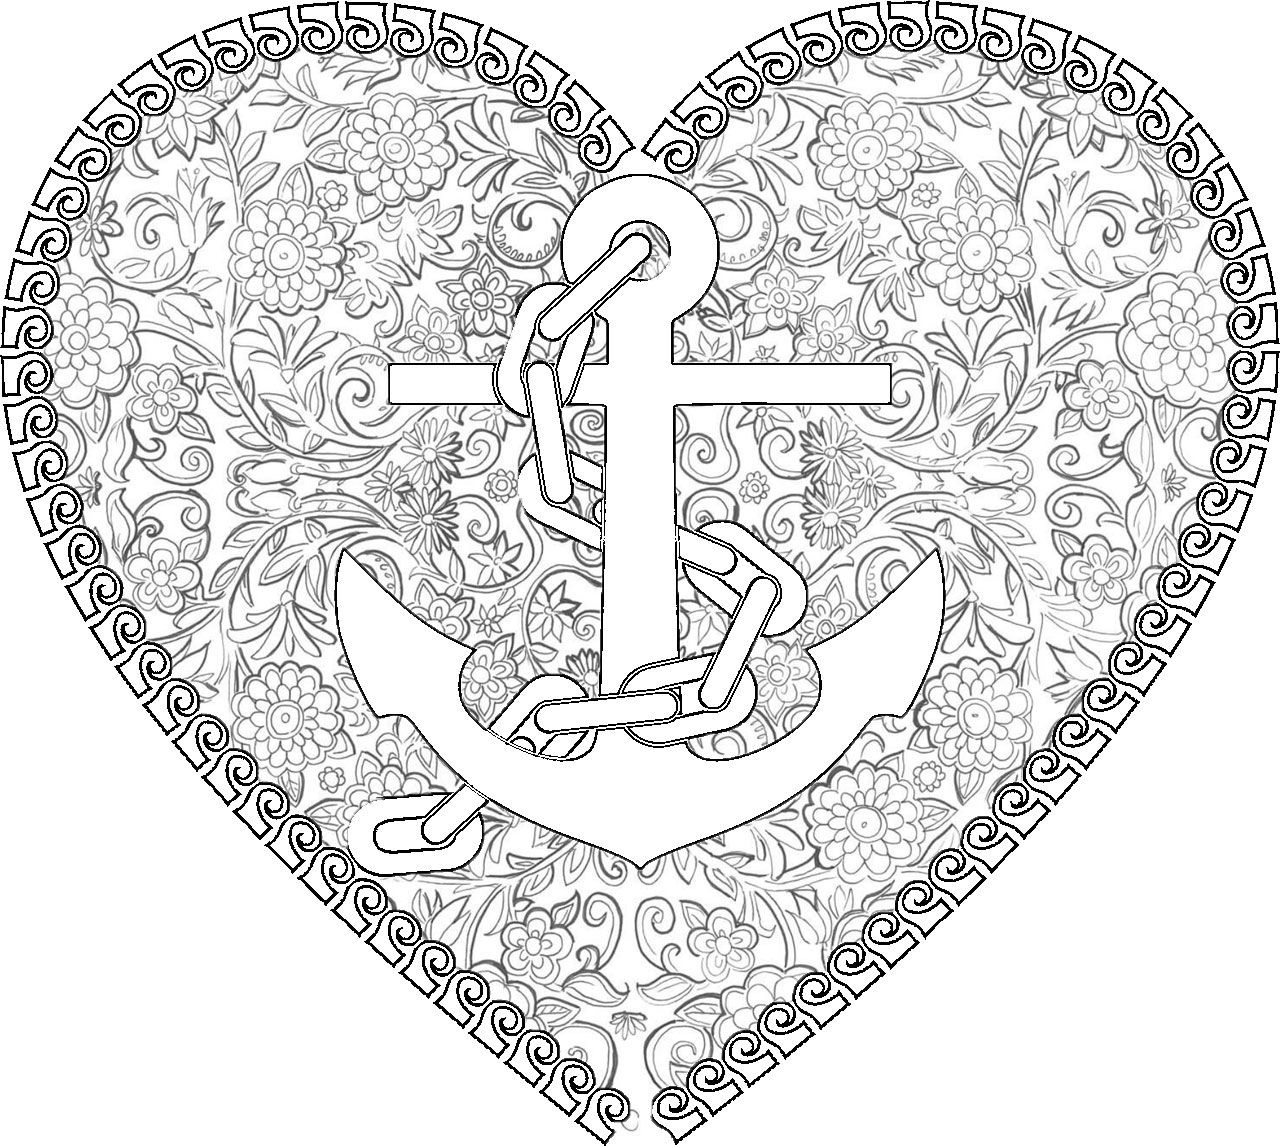 Adult Coloring Pages Anchor 1 Heart Coloring Pages Love